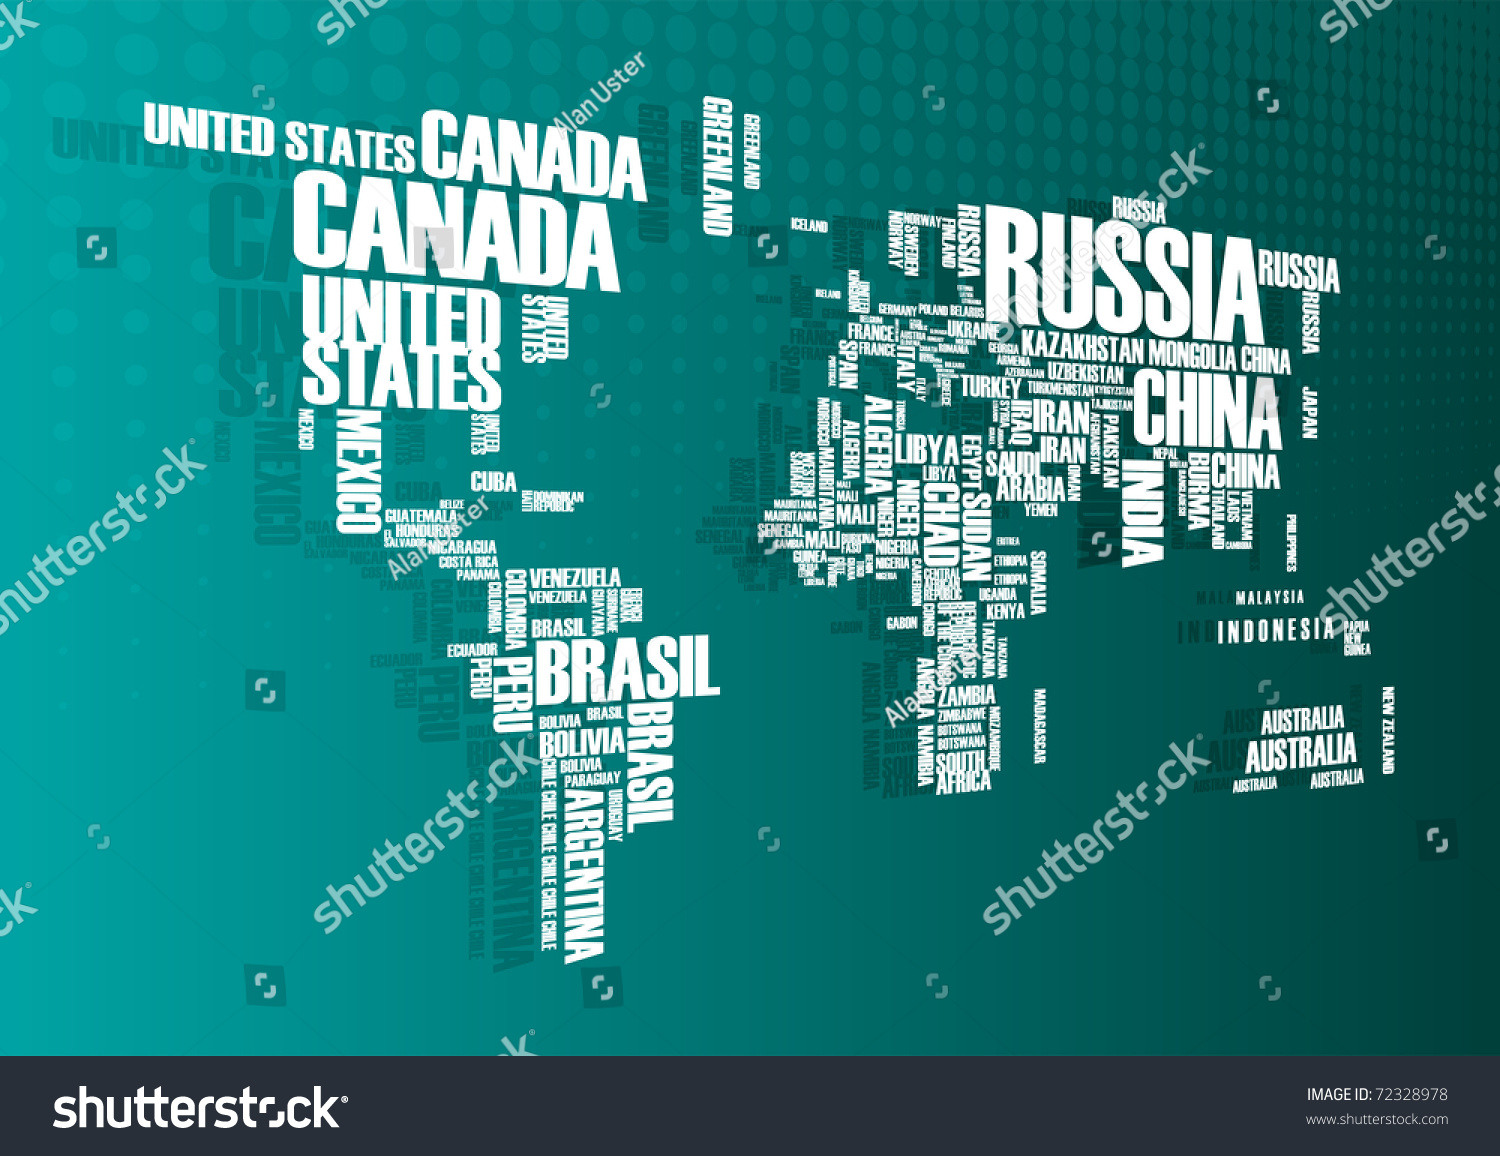 World map countries wordcloud stock vector 2018 72328978 world map countries in wordcloud gumiabroncs Choice Image